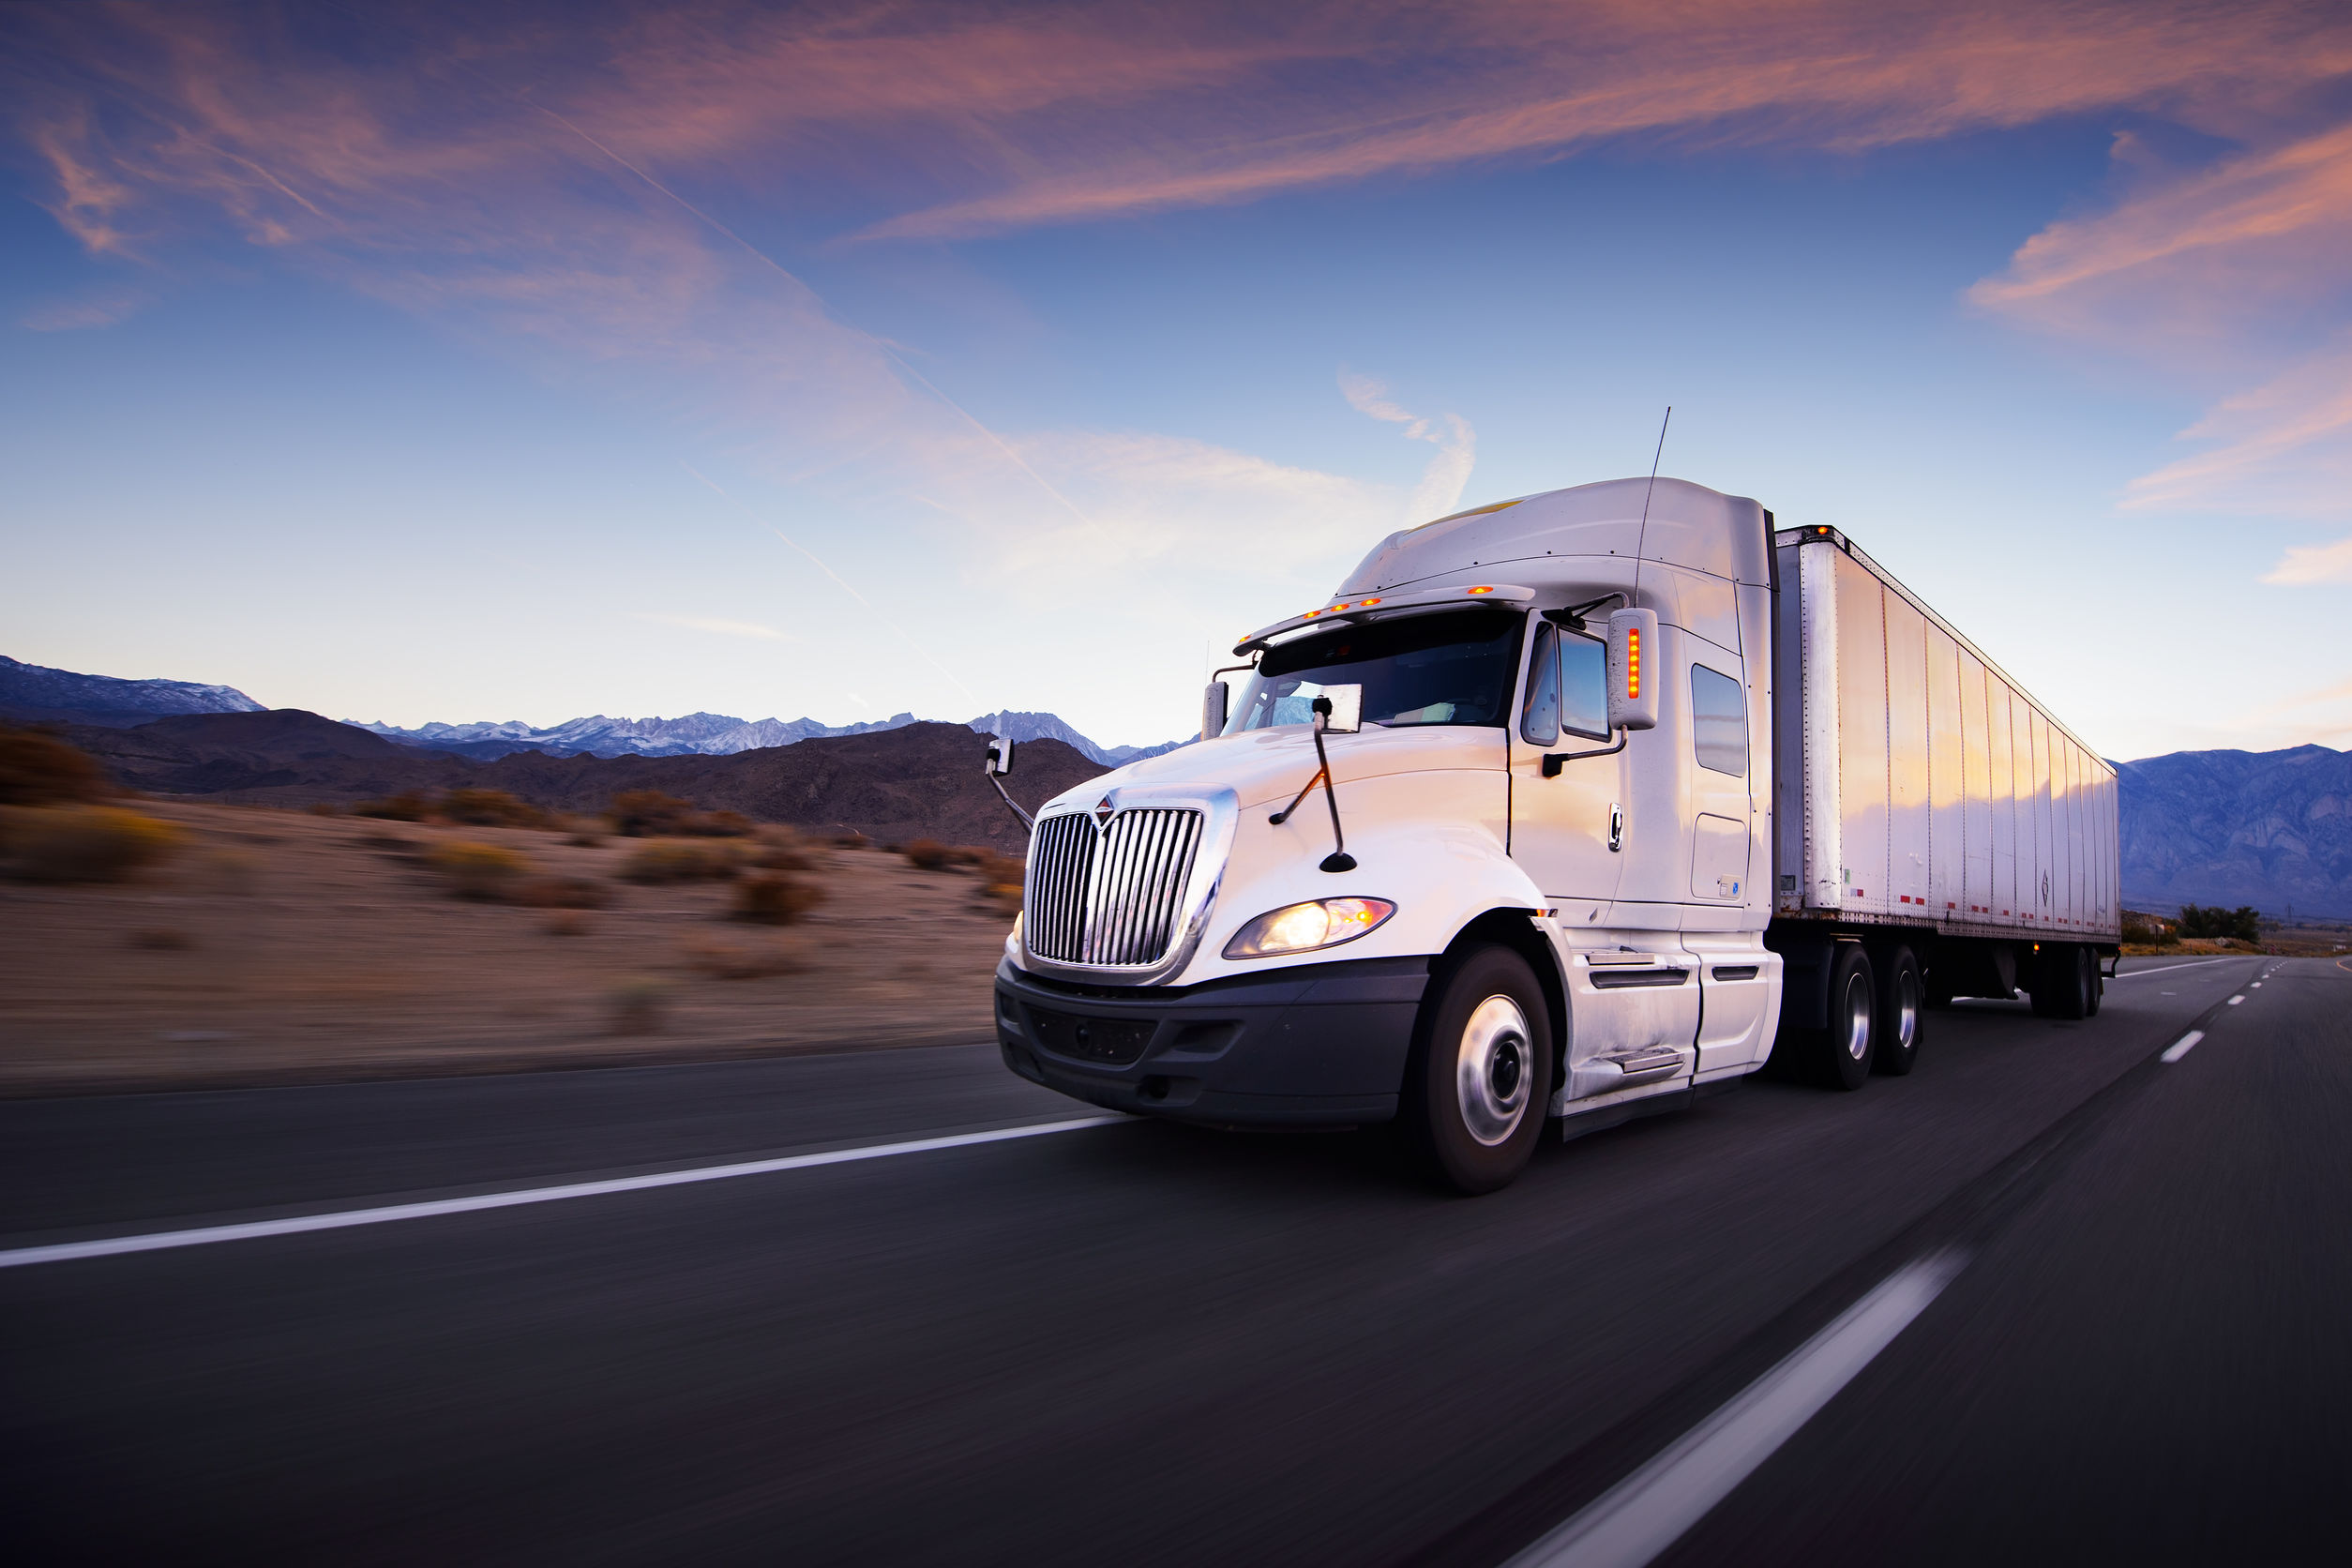 Truck Driving on Open Highway for Training